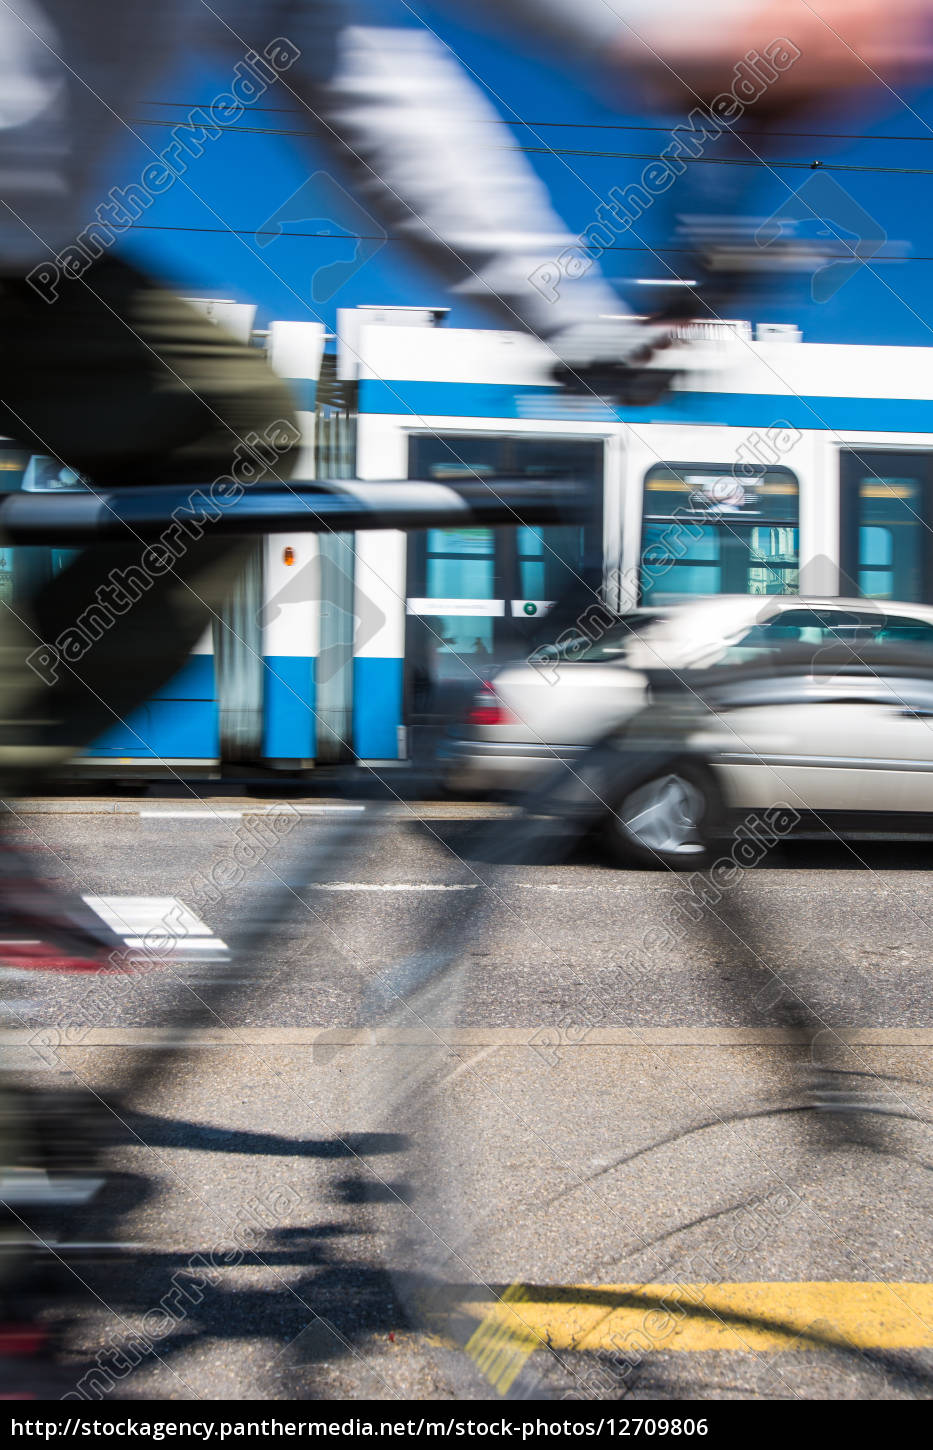 city, transportation, concept, -, commuting, methods - 12709806